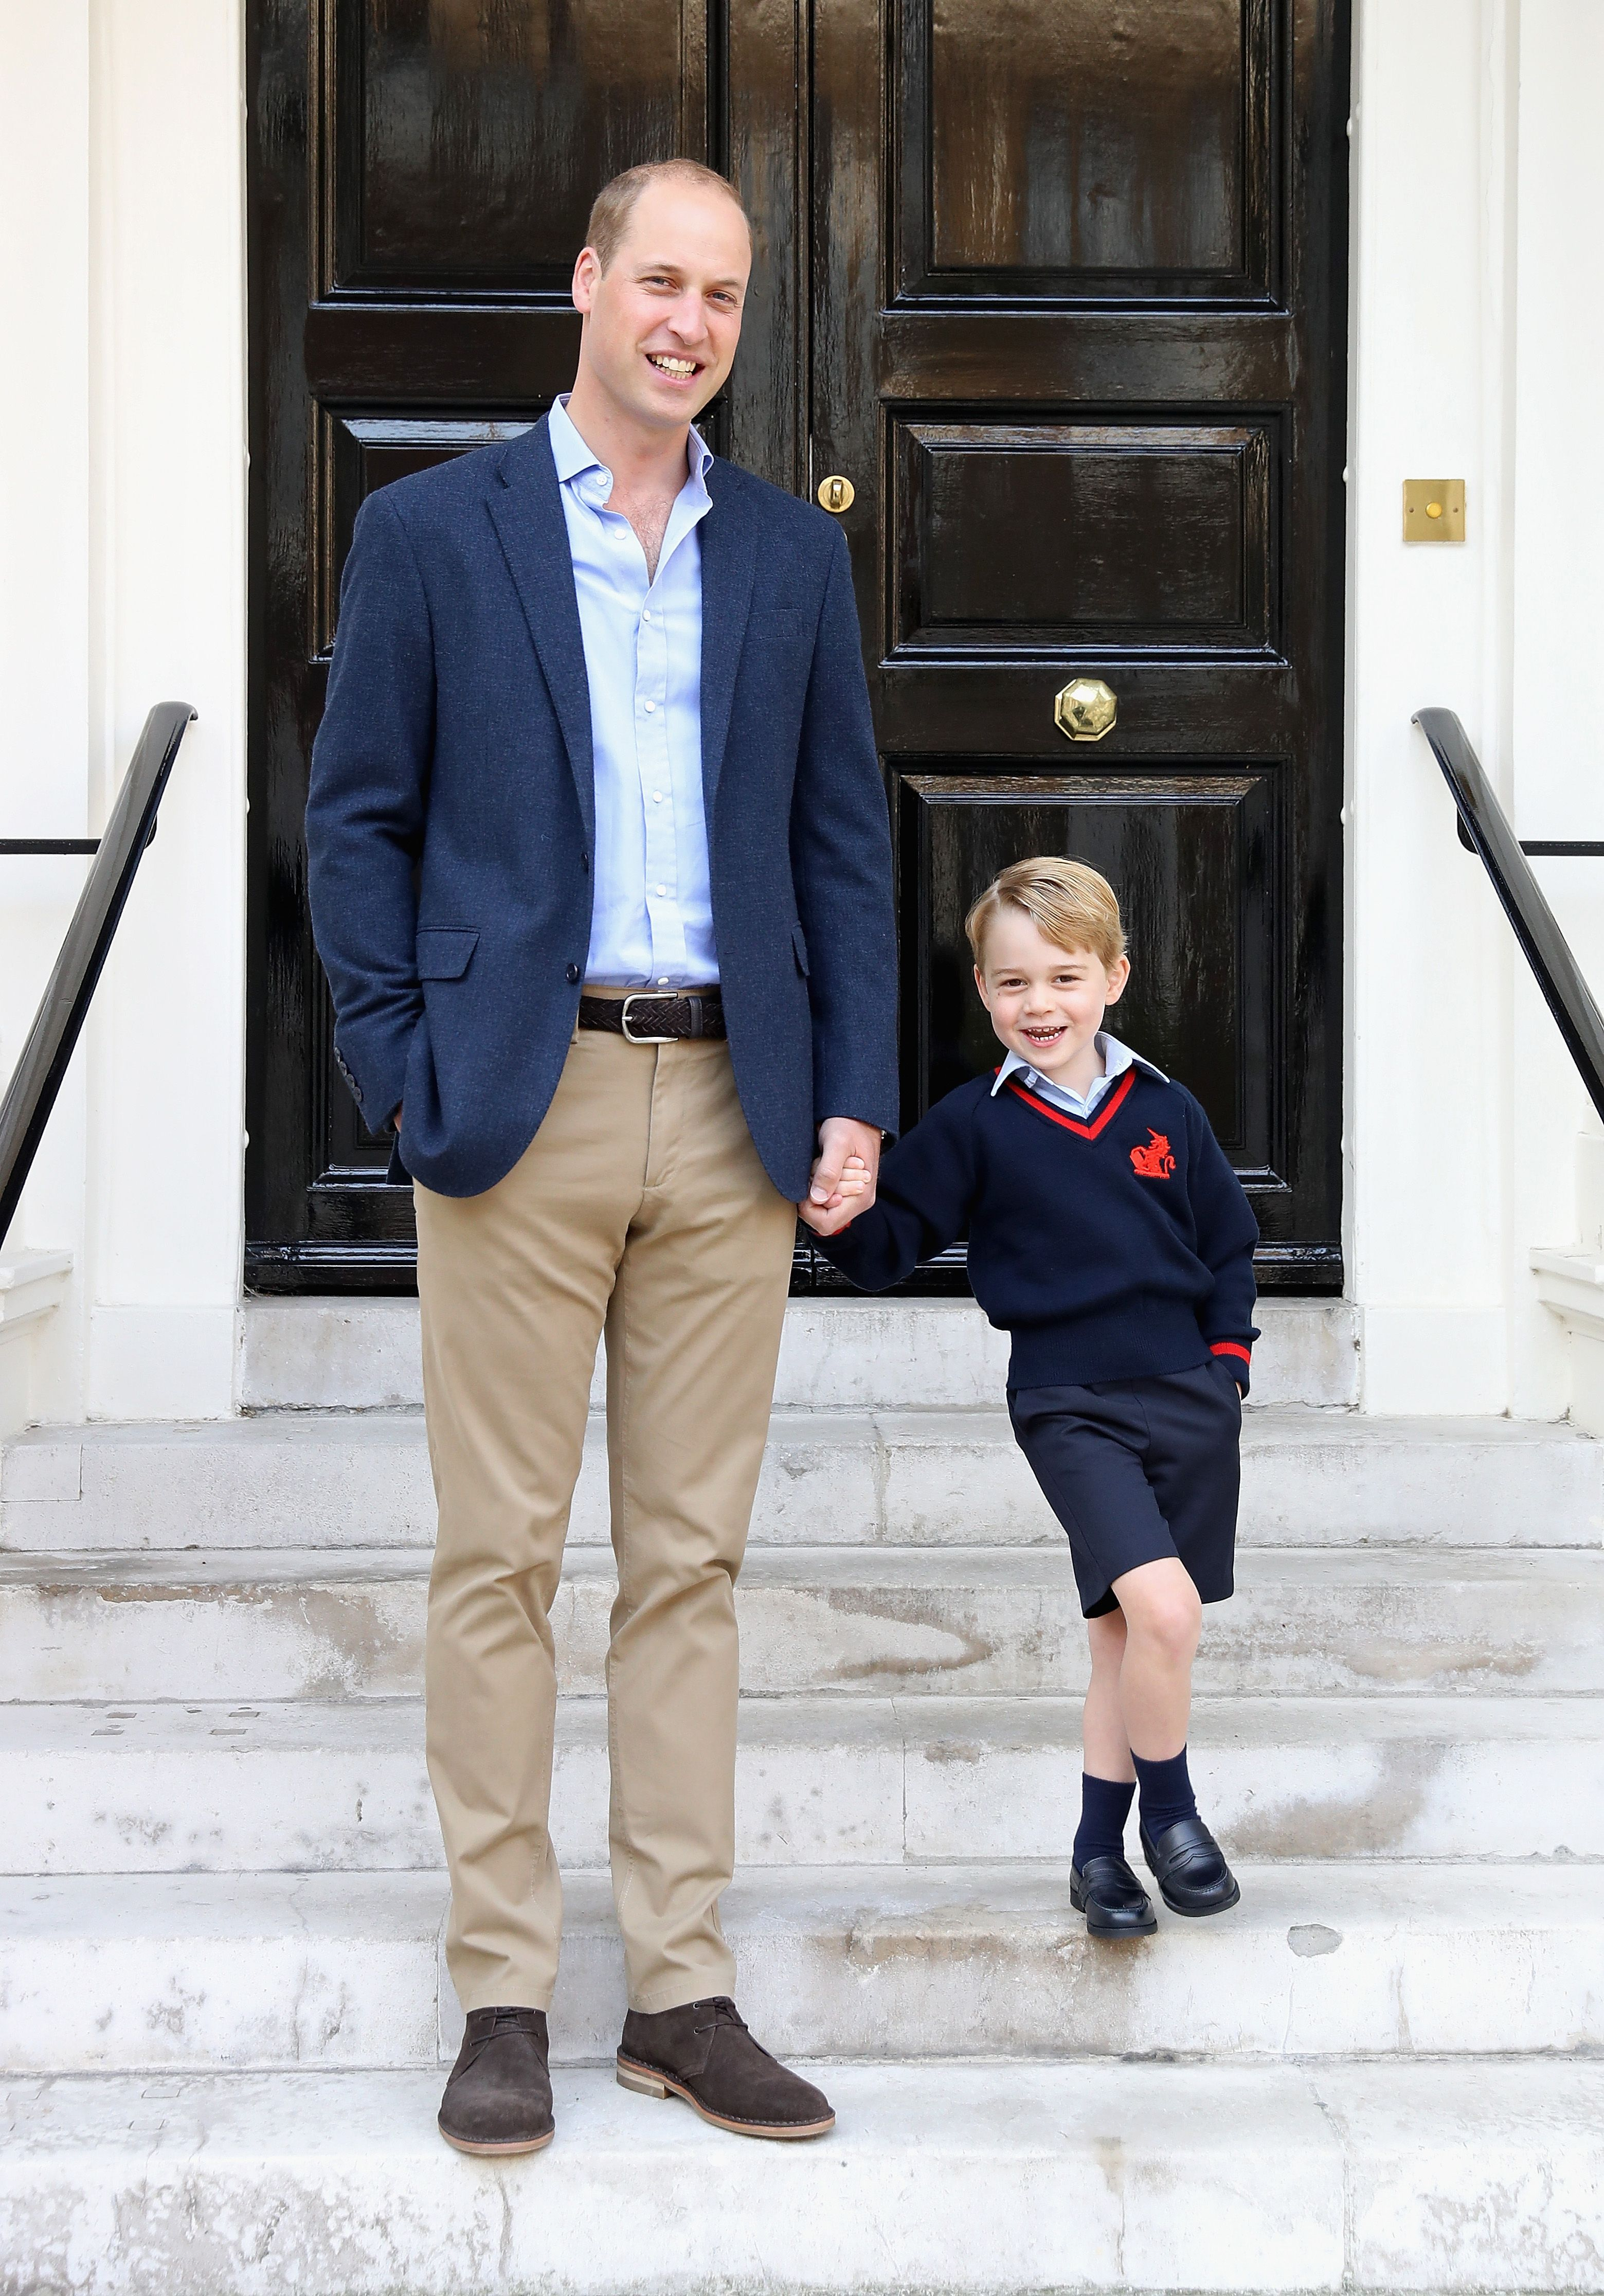 Prince William and Prince George on his first day of school on September 7, 2017 in London, England.   Photo: Getty Images